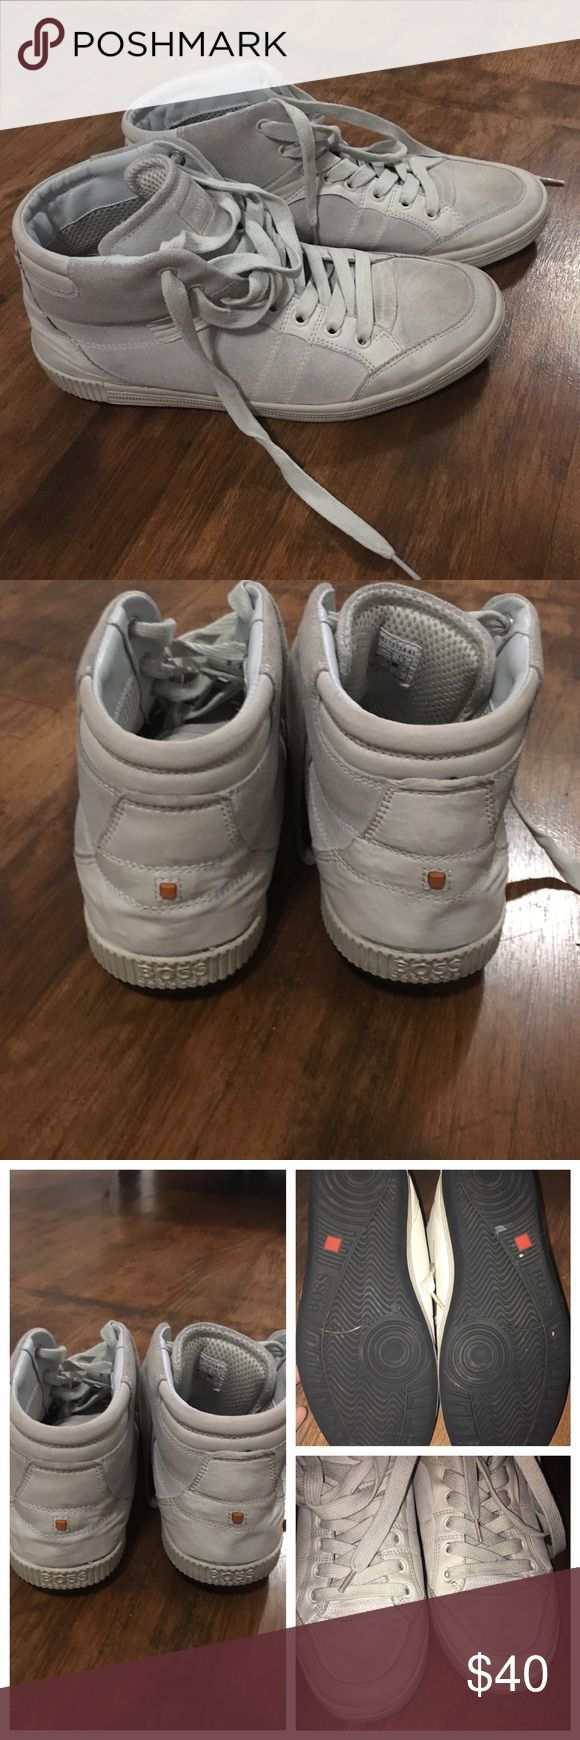 Boss by Hugo Boss Sneakers 👟 Boss by Hugo Boss off white sneakers for men. Size 41 US size 8. This sneakers are worn and shows signs of wear mostly on the front and the back please see pic. High top kinda like suede material on the sides. I don't have the box. BOSS ORANGE Shoes Sneakers